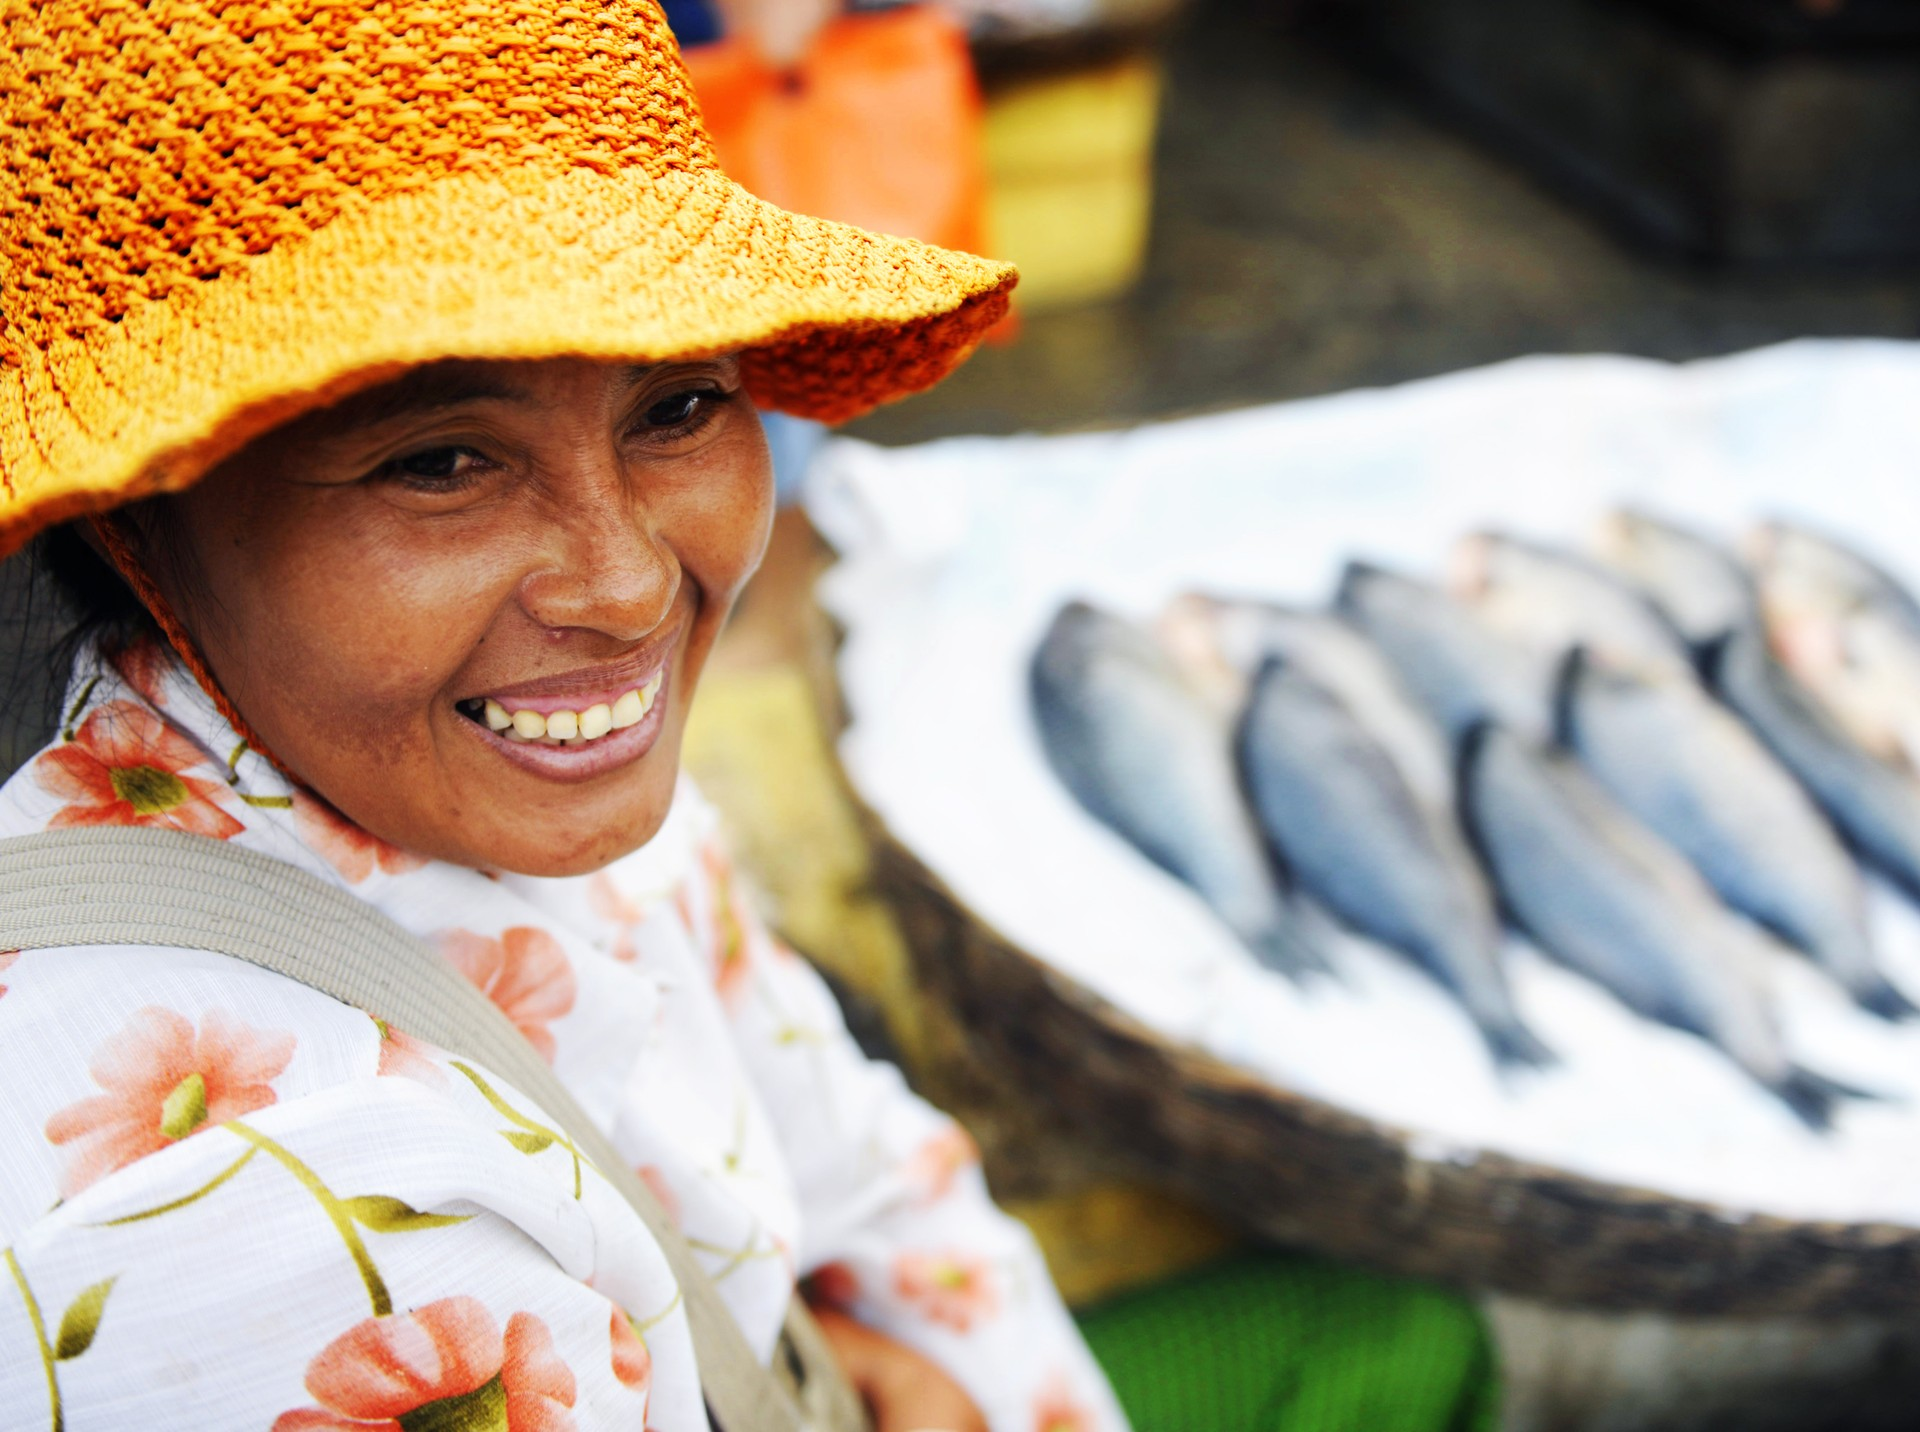 Lady selling fish in Cambodia